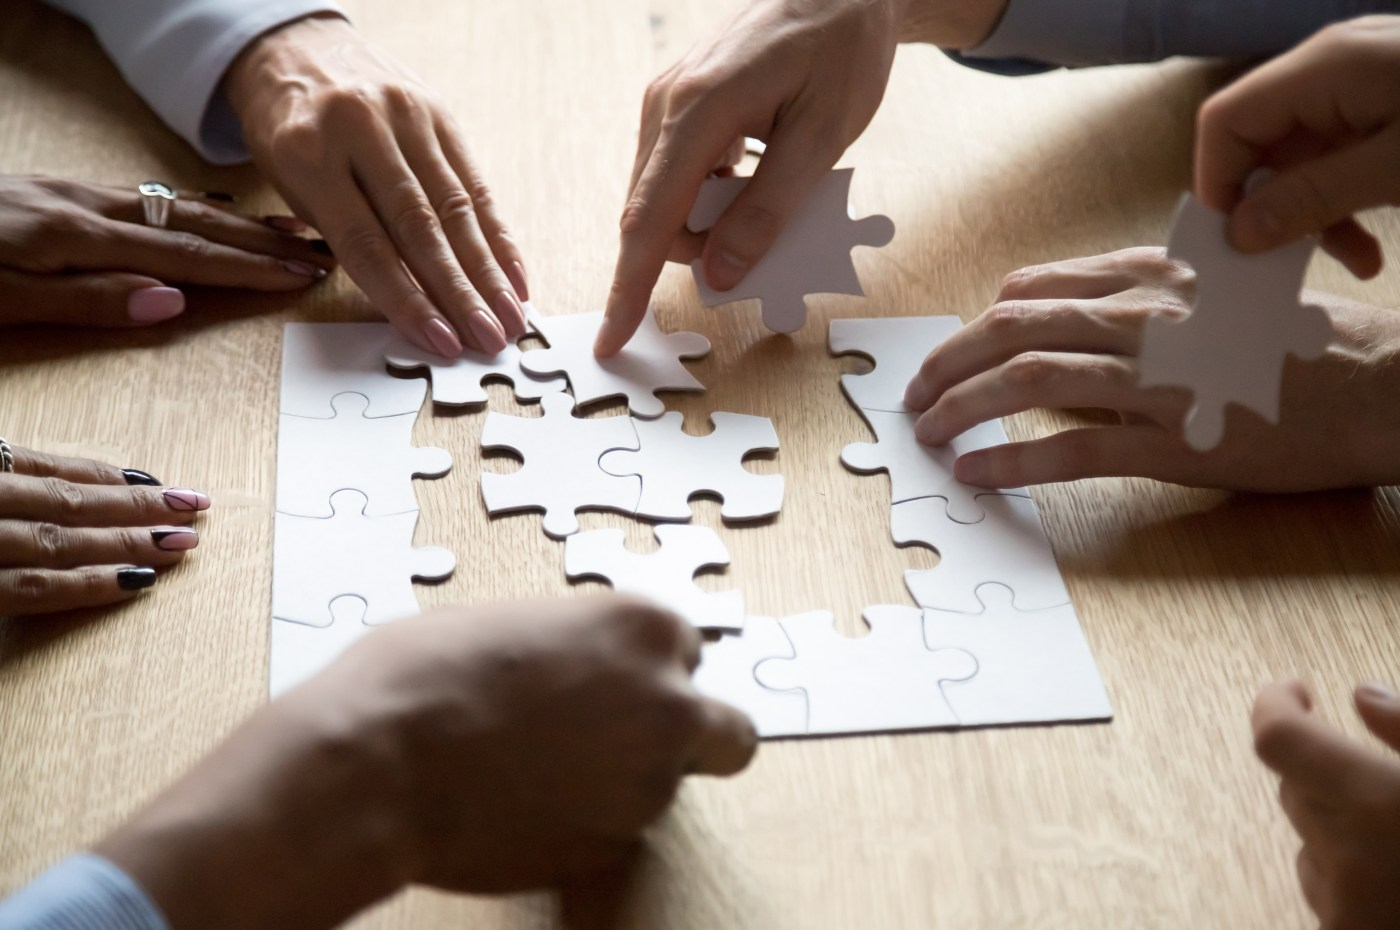 Multiple people assemble a jigsaw puzzle together